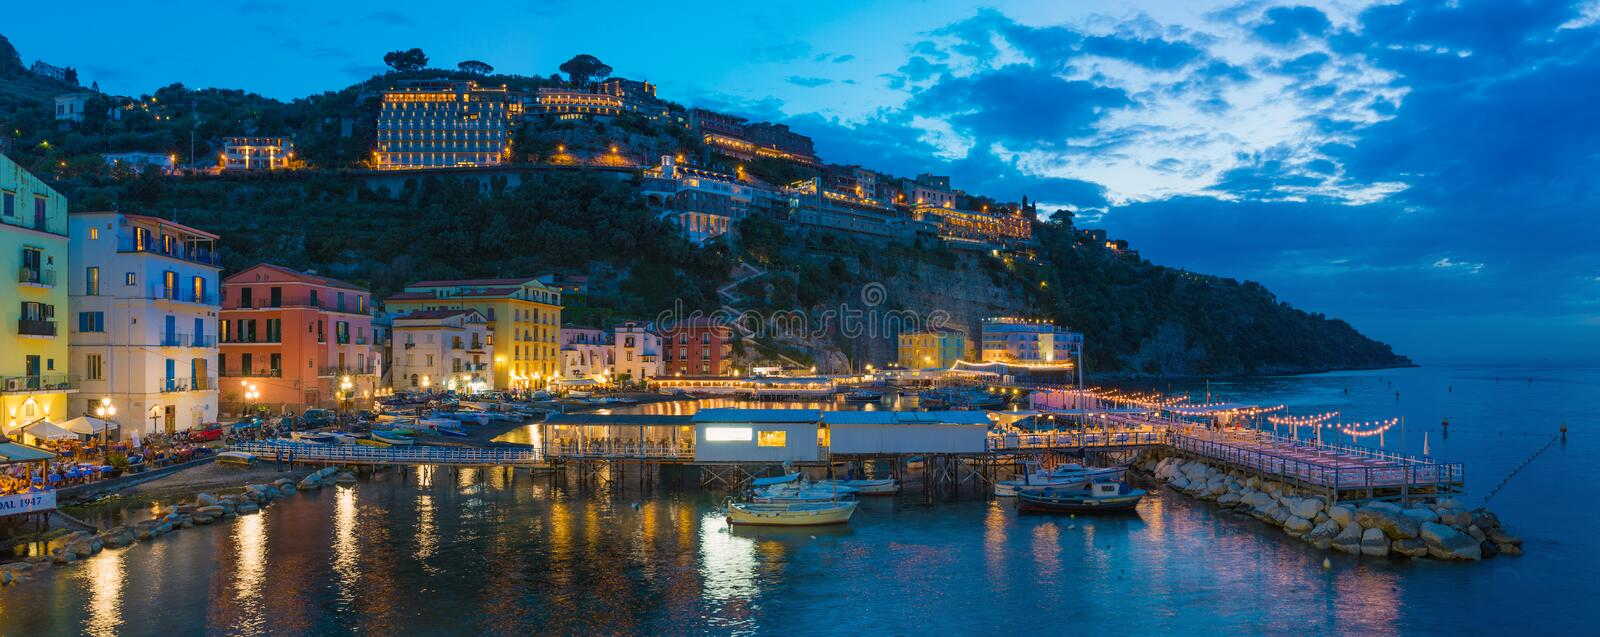 Panoramic night view of Marina grande in Sorrento - popular tourist destination in Italy royalty free stock photo